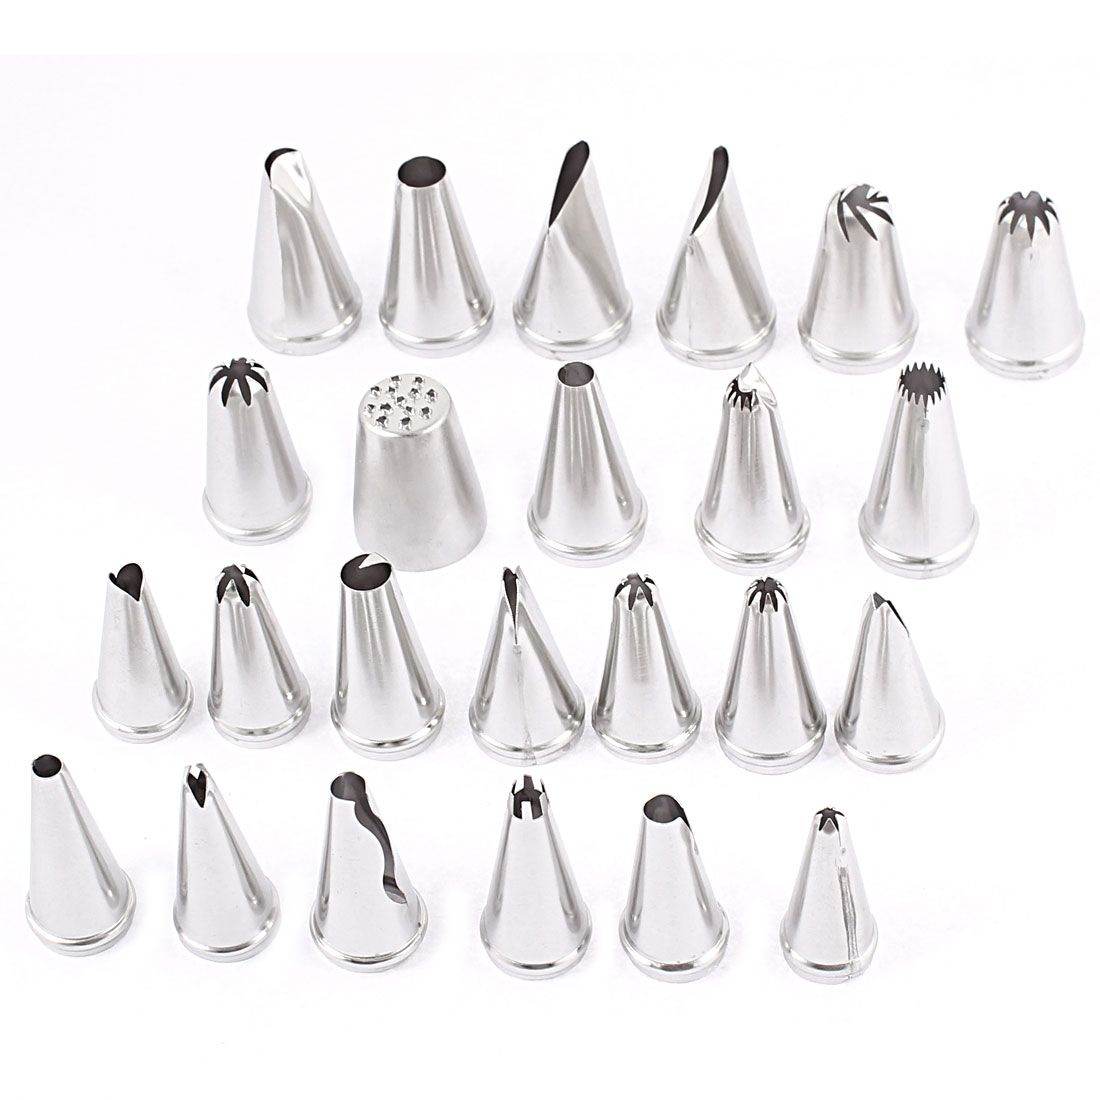 Unique Bargains Pastry Cake Decorating Icing Piping Tips Nozzles 24 in 1 by